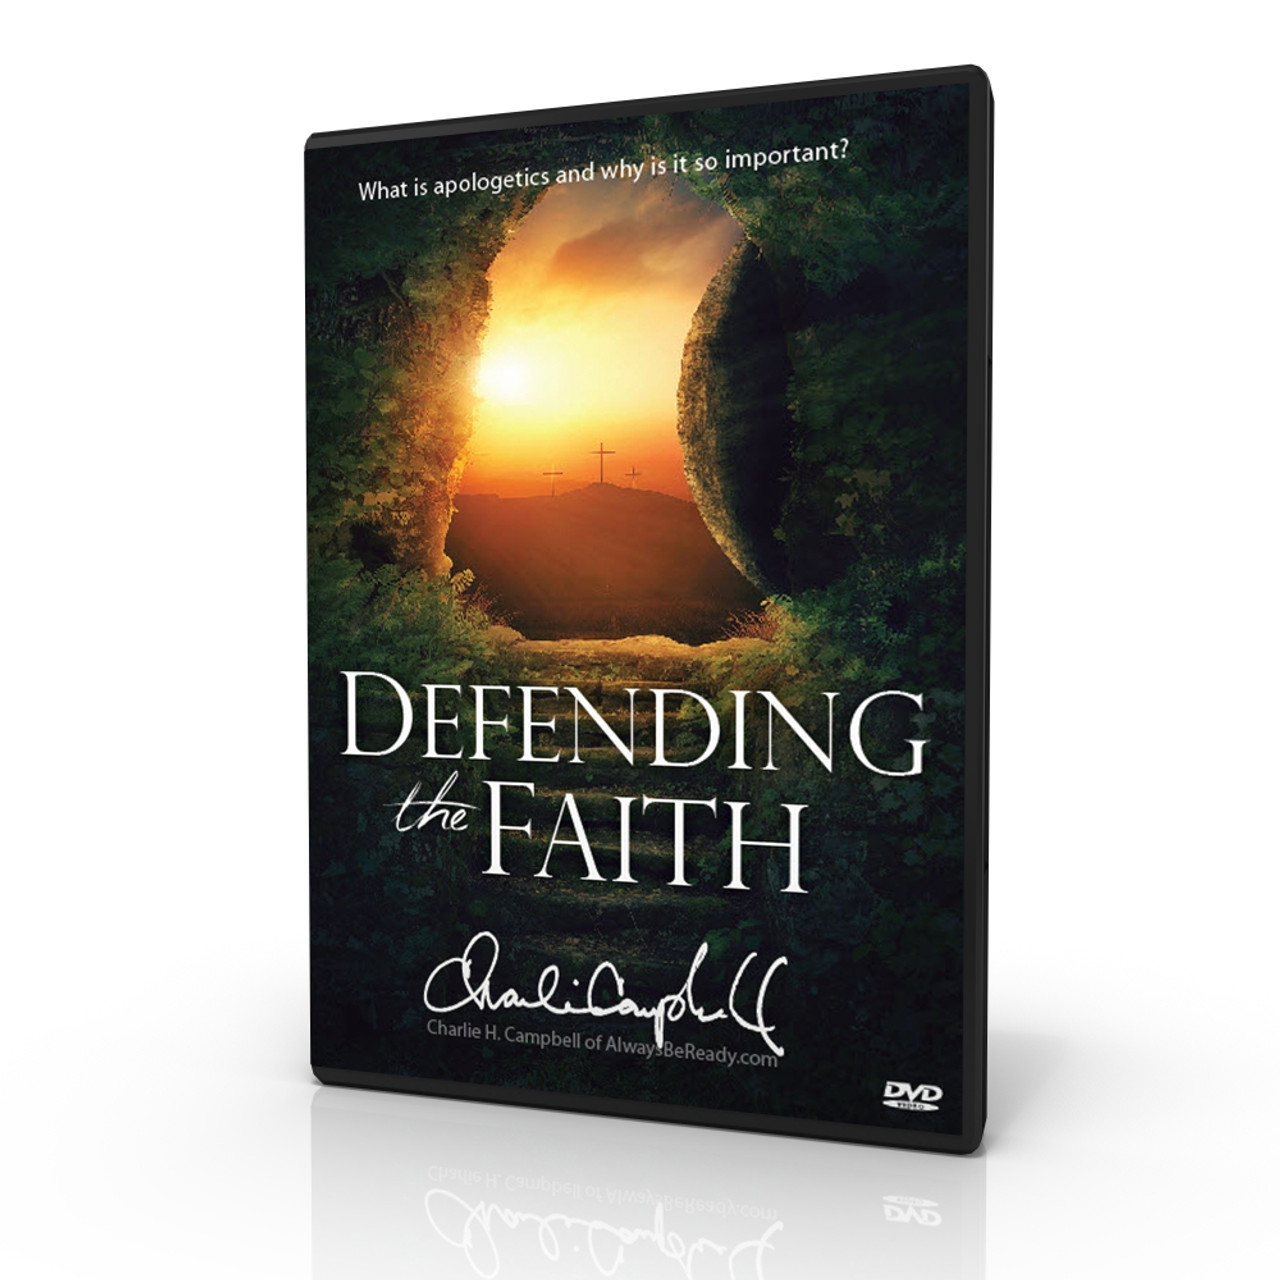 Defending the Faith: What is Apologetics? And...Why Do it?